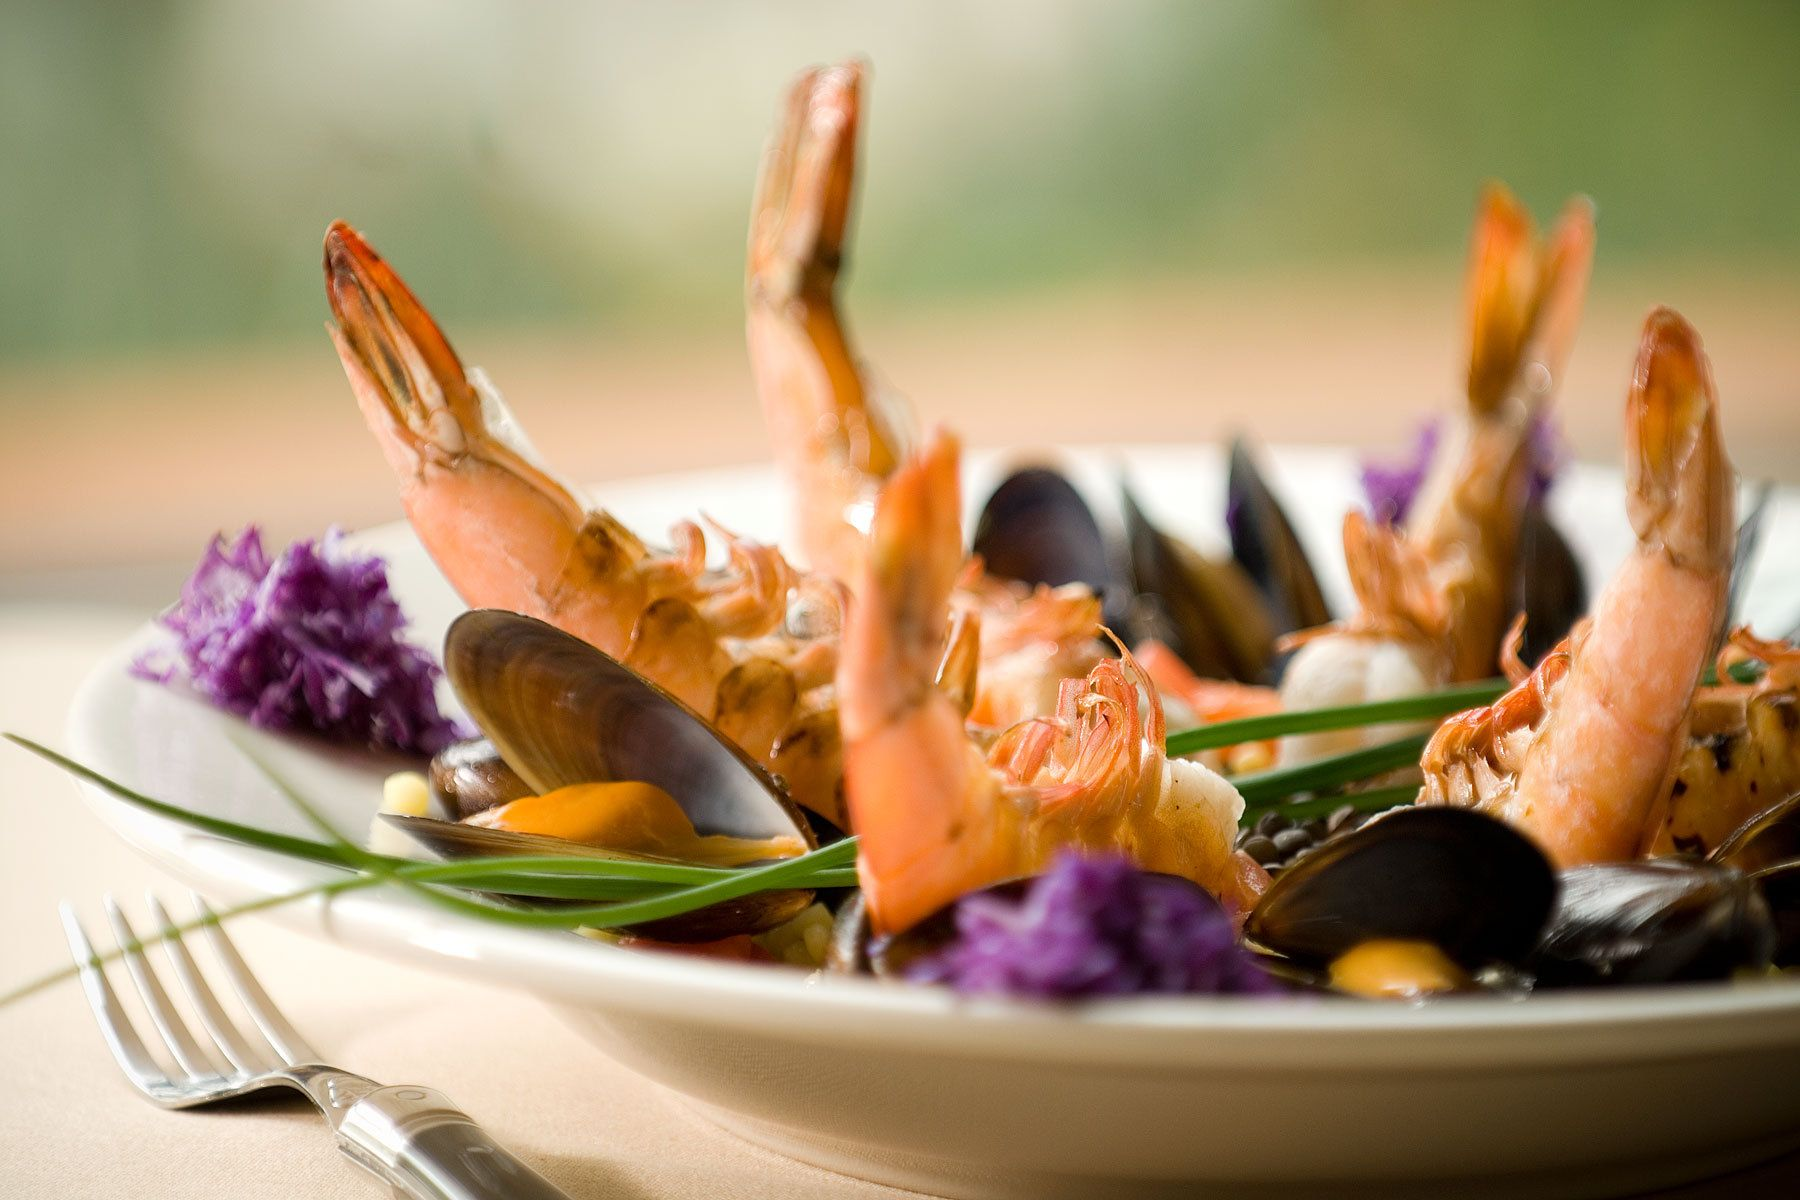 Sauteed Shrimp and Mussels